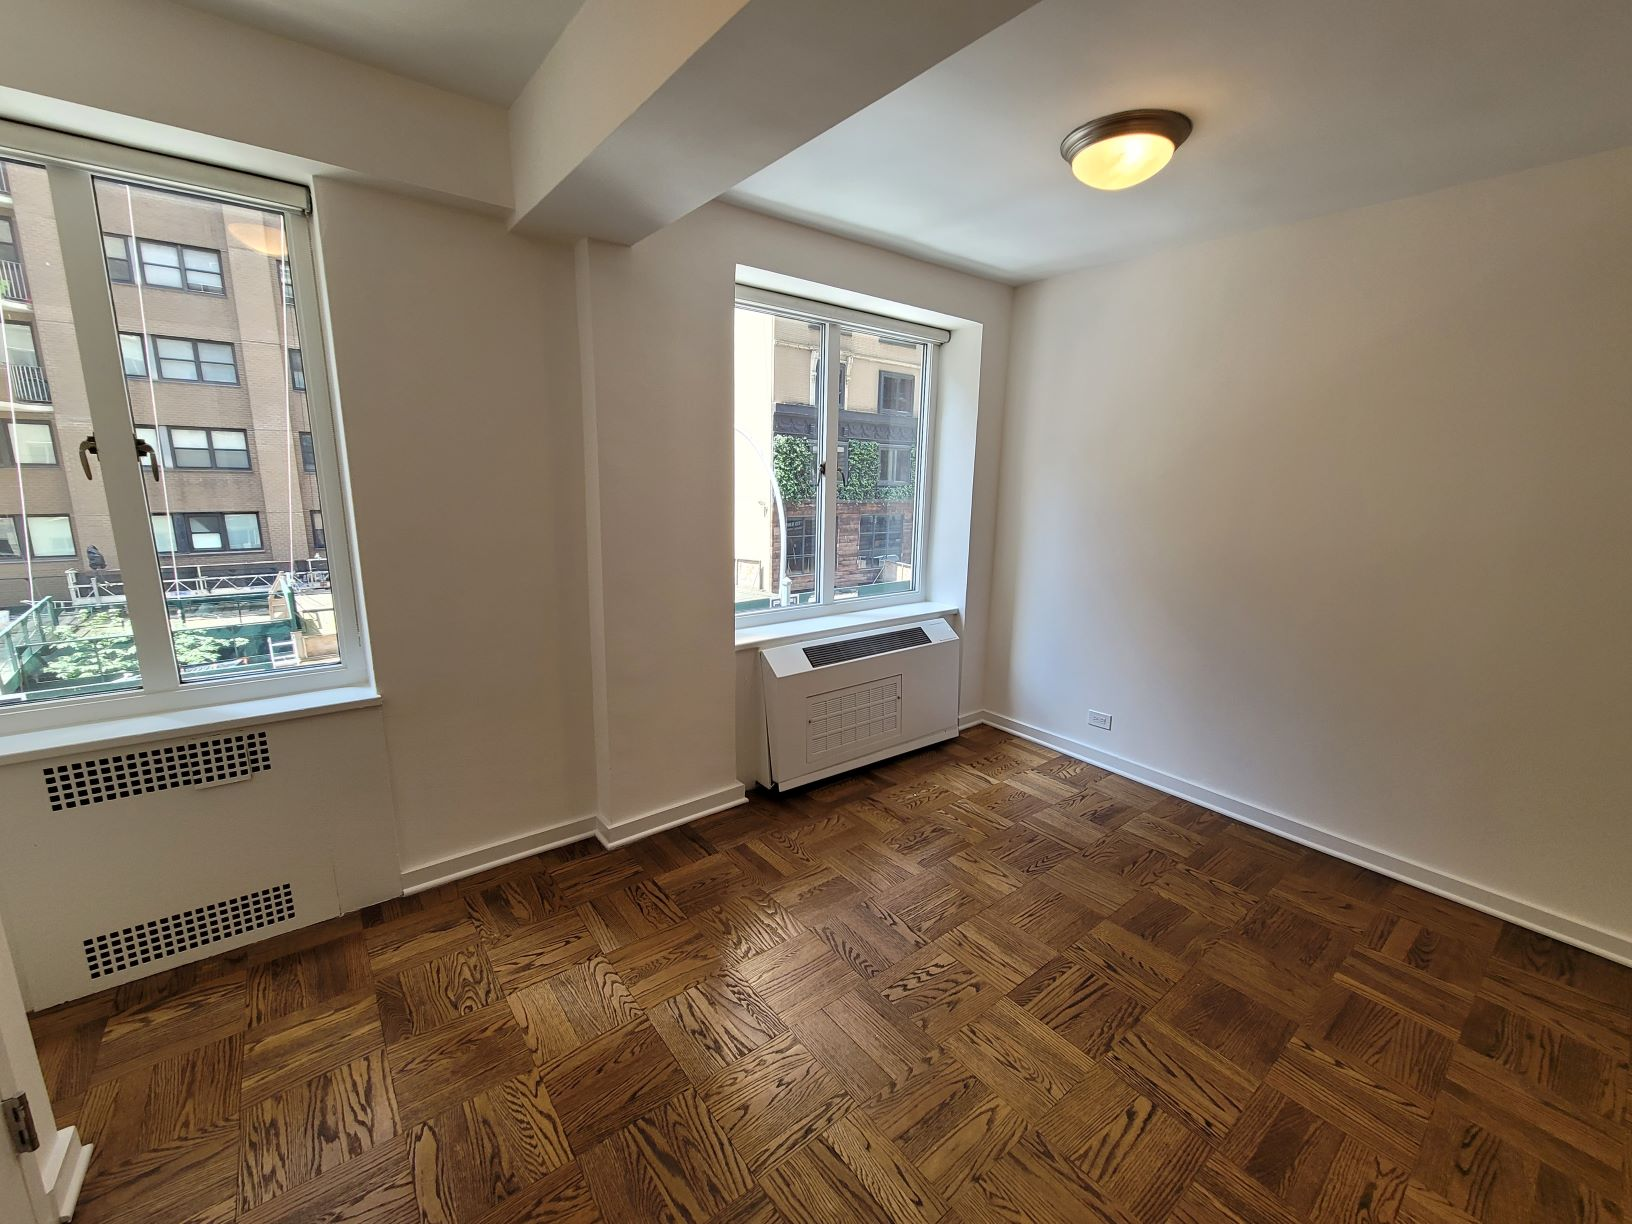 41 West 58th Street Midtown West New York NY 10019